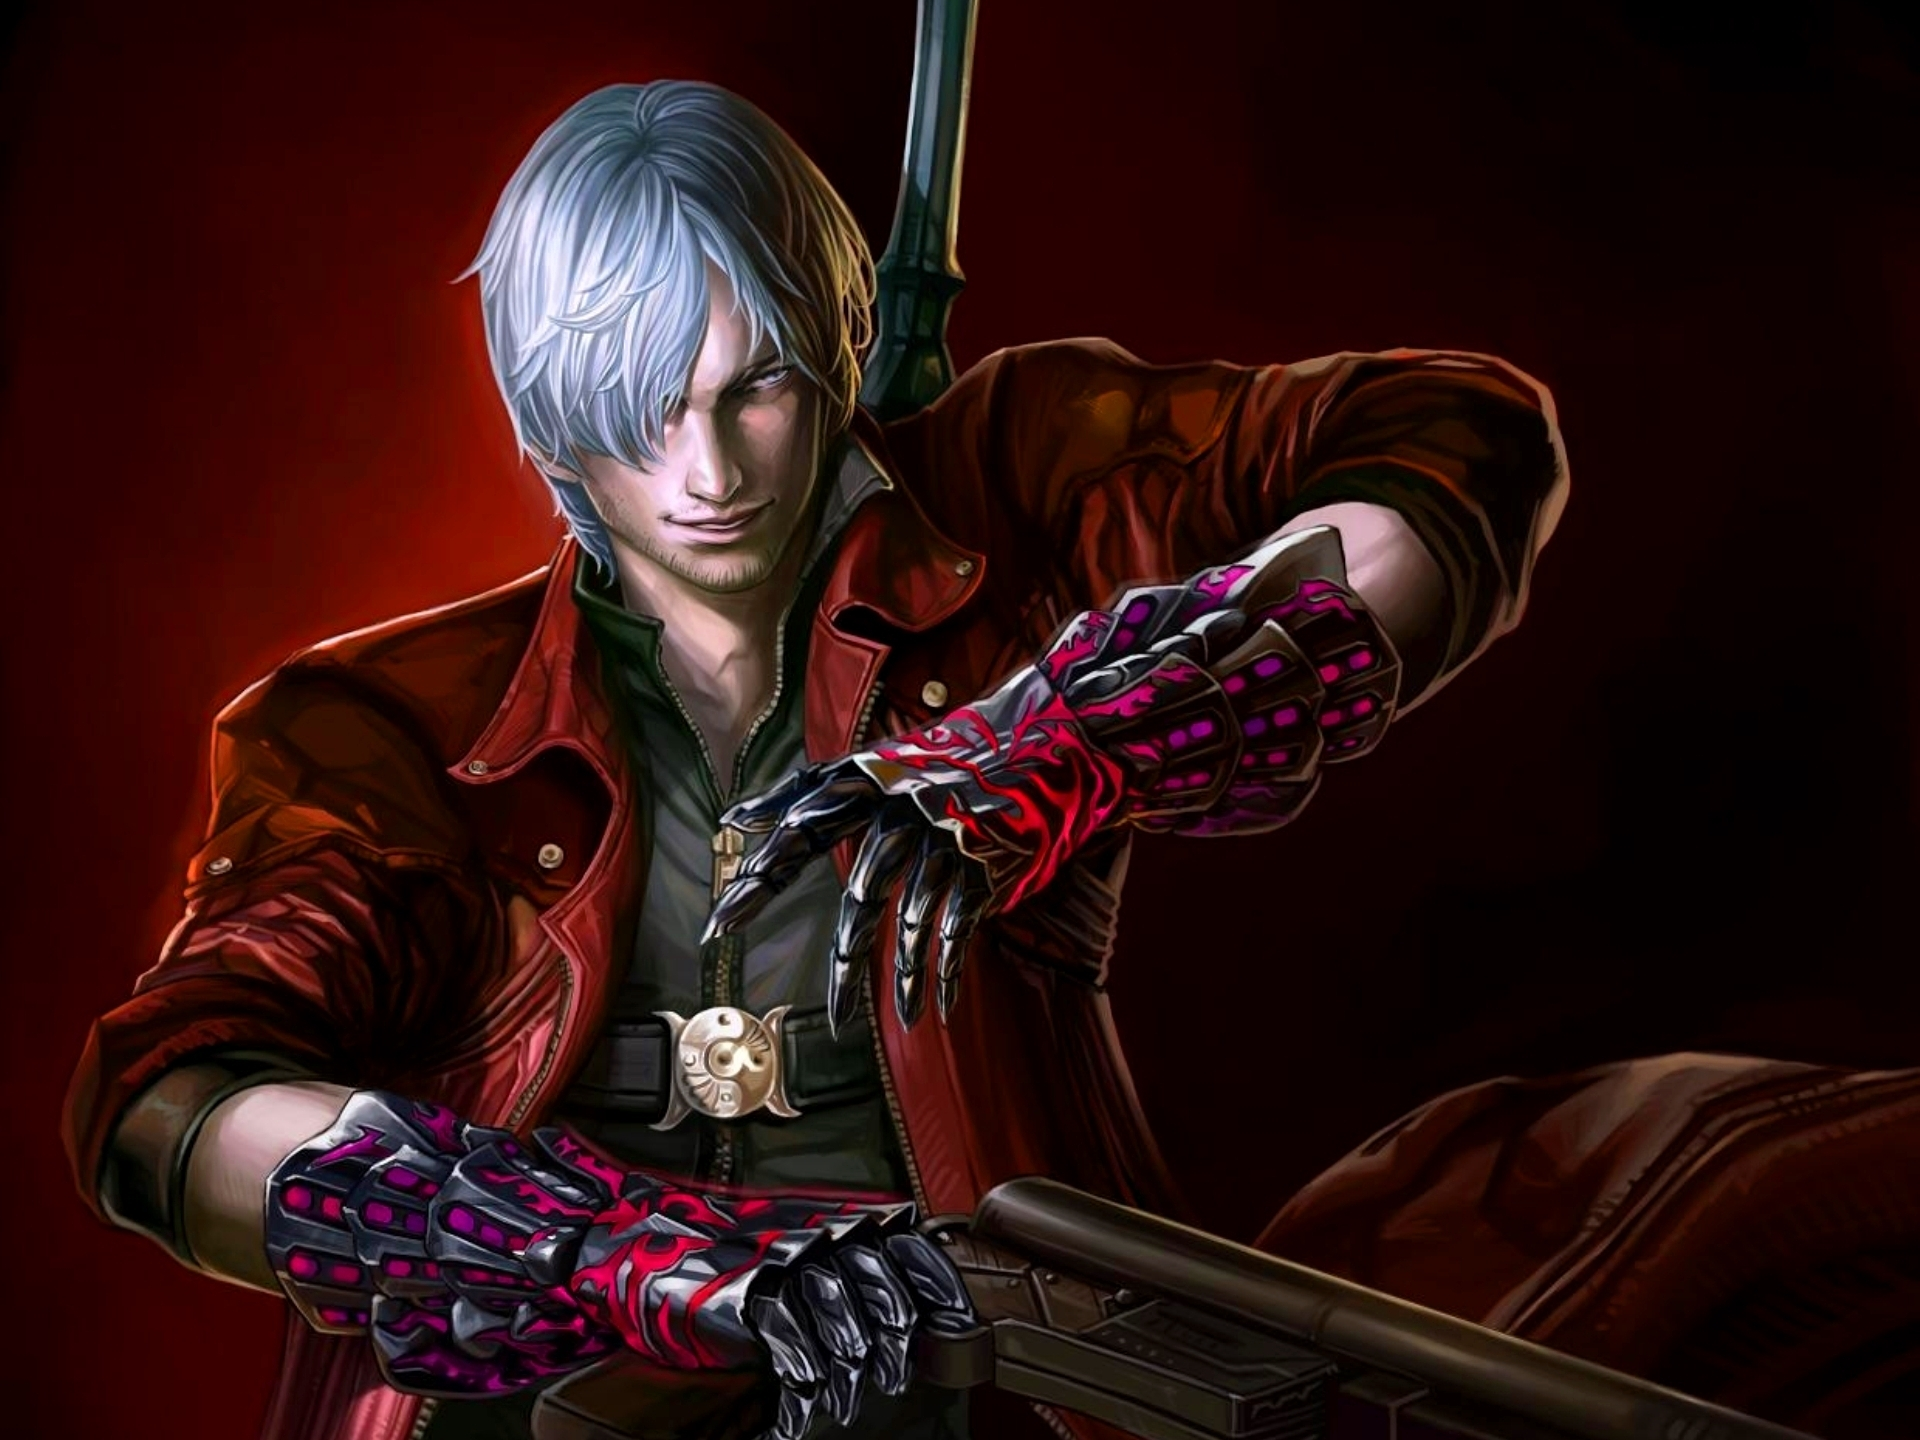 Devil may cry 4 hd wallpaper background image 1920x1440 id 203459 wallpaper abyss - Devil may cry hd pics ...